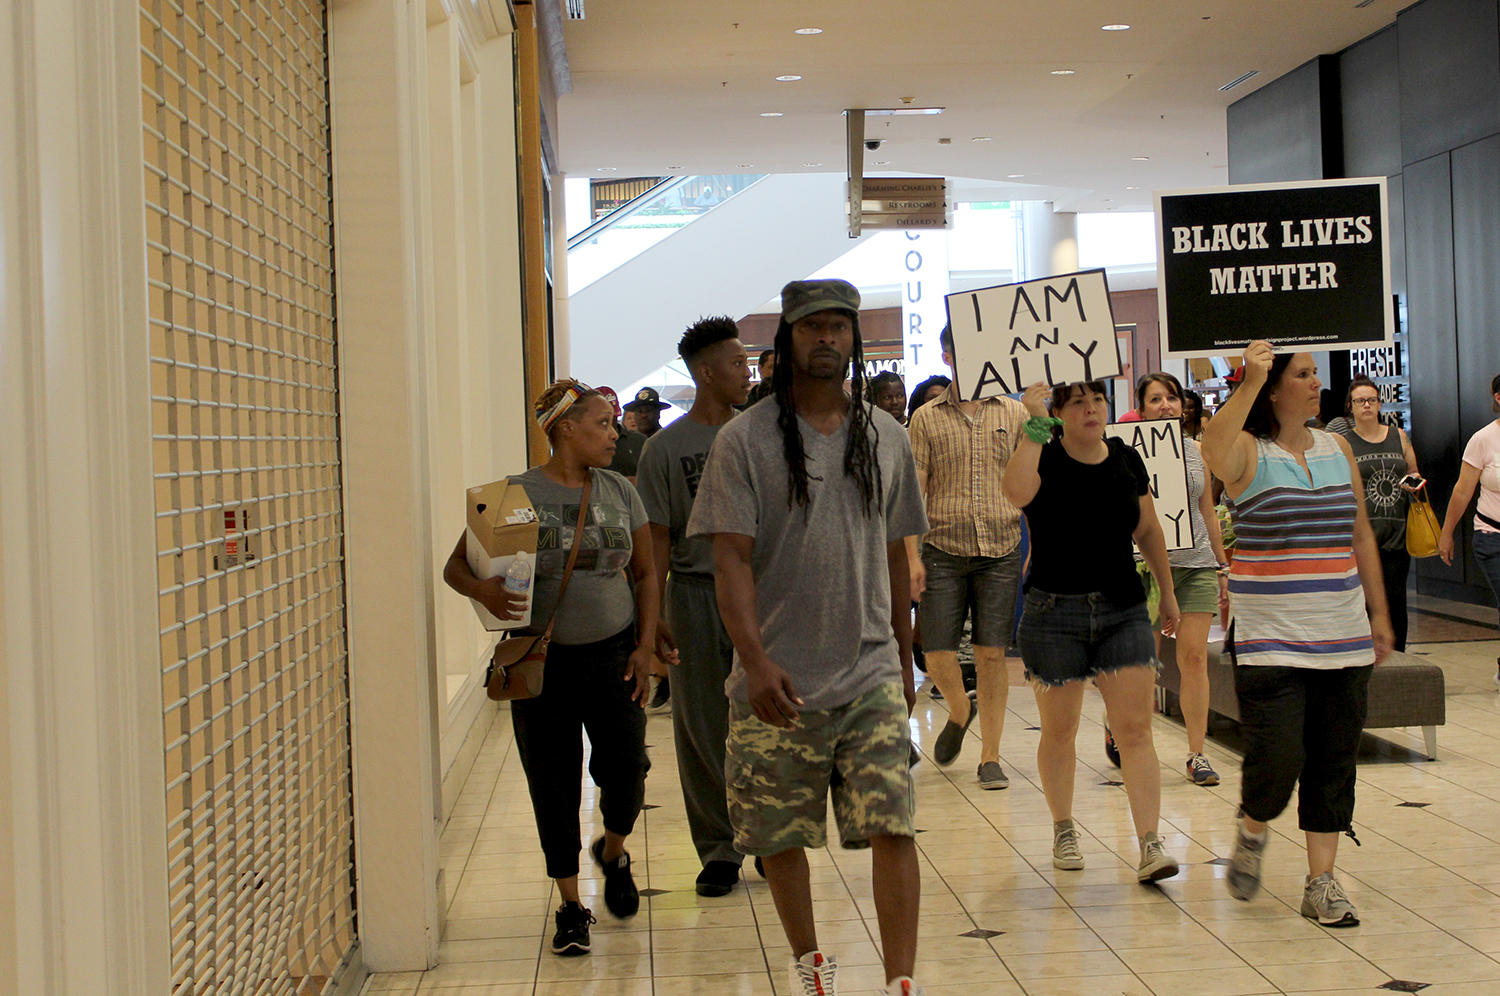 'This is way wrong'; Columbia mom questions son's Galleria protest arrest